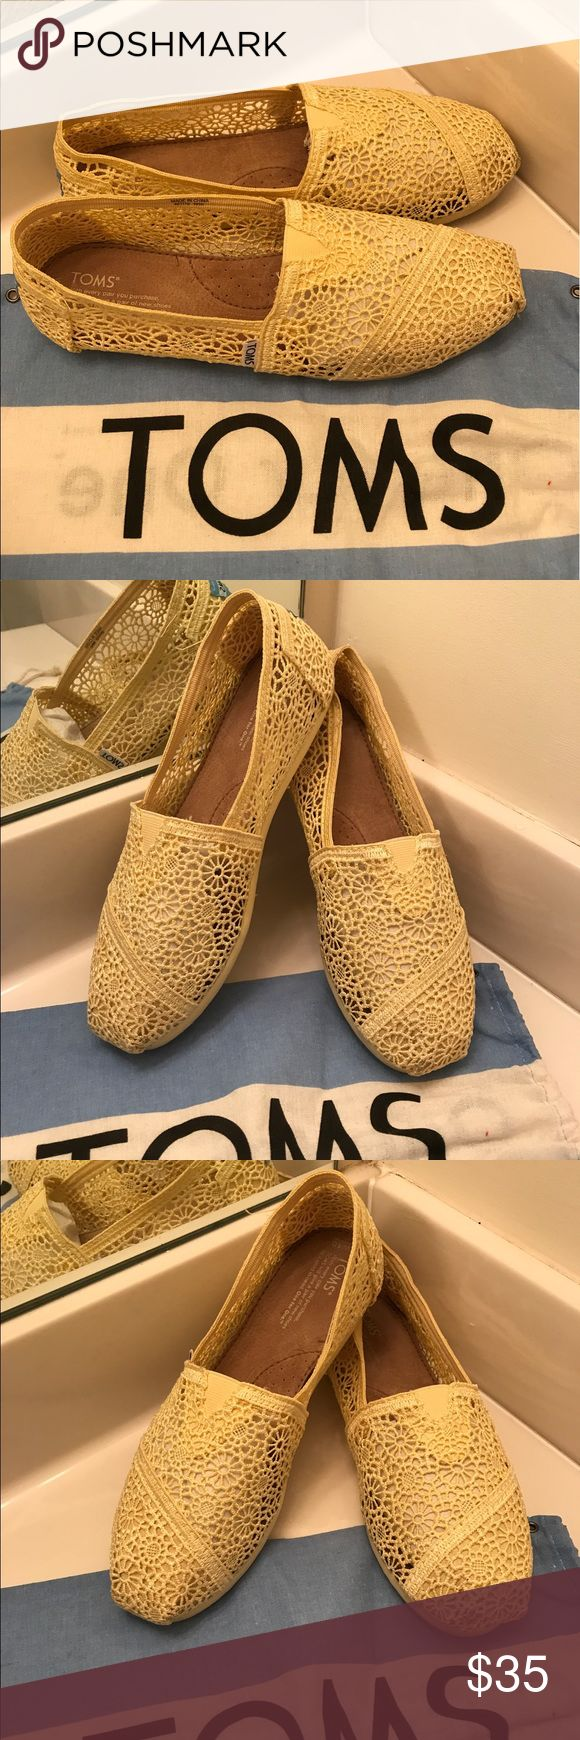 TOMS Crochet Yellow Lace Size 10 TOMS Crochet Yellow Lace Size 10. Gorgeous comfortable light and airy yellow TOMS. GUC 🚫🚫Trades, paypal, any questions in the comments regarding price please use the offer button or they will be ignored🚫🚫 TOMS Shoes Flats & Loafers